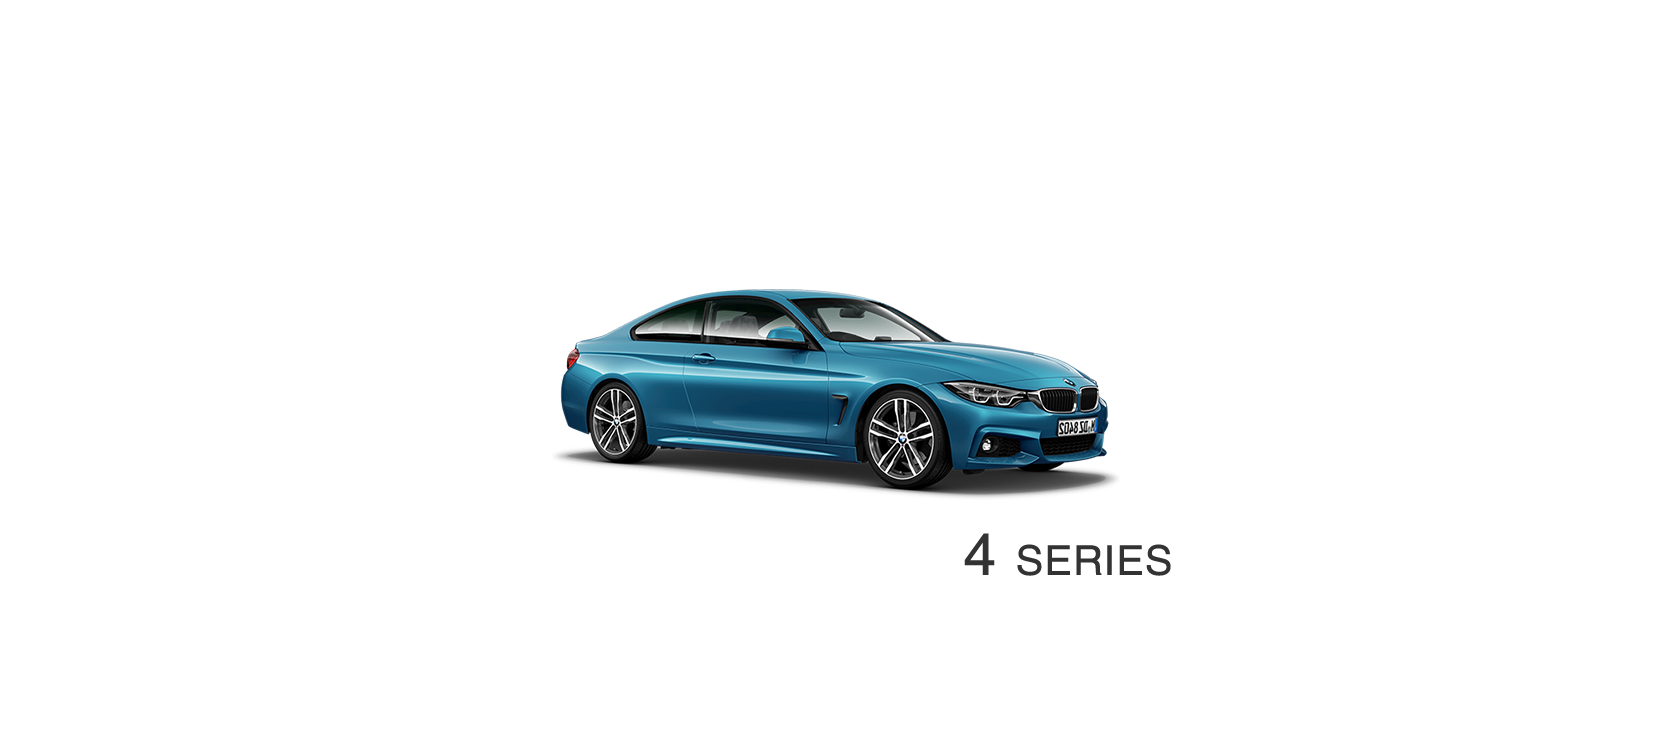 BMW 4 Series | Headlight lens plastic covers